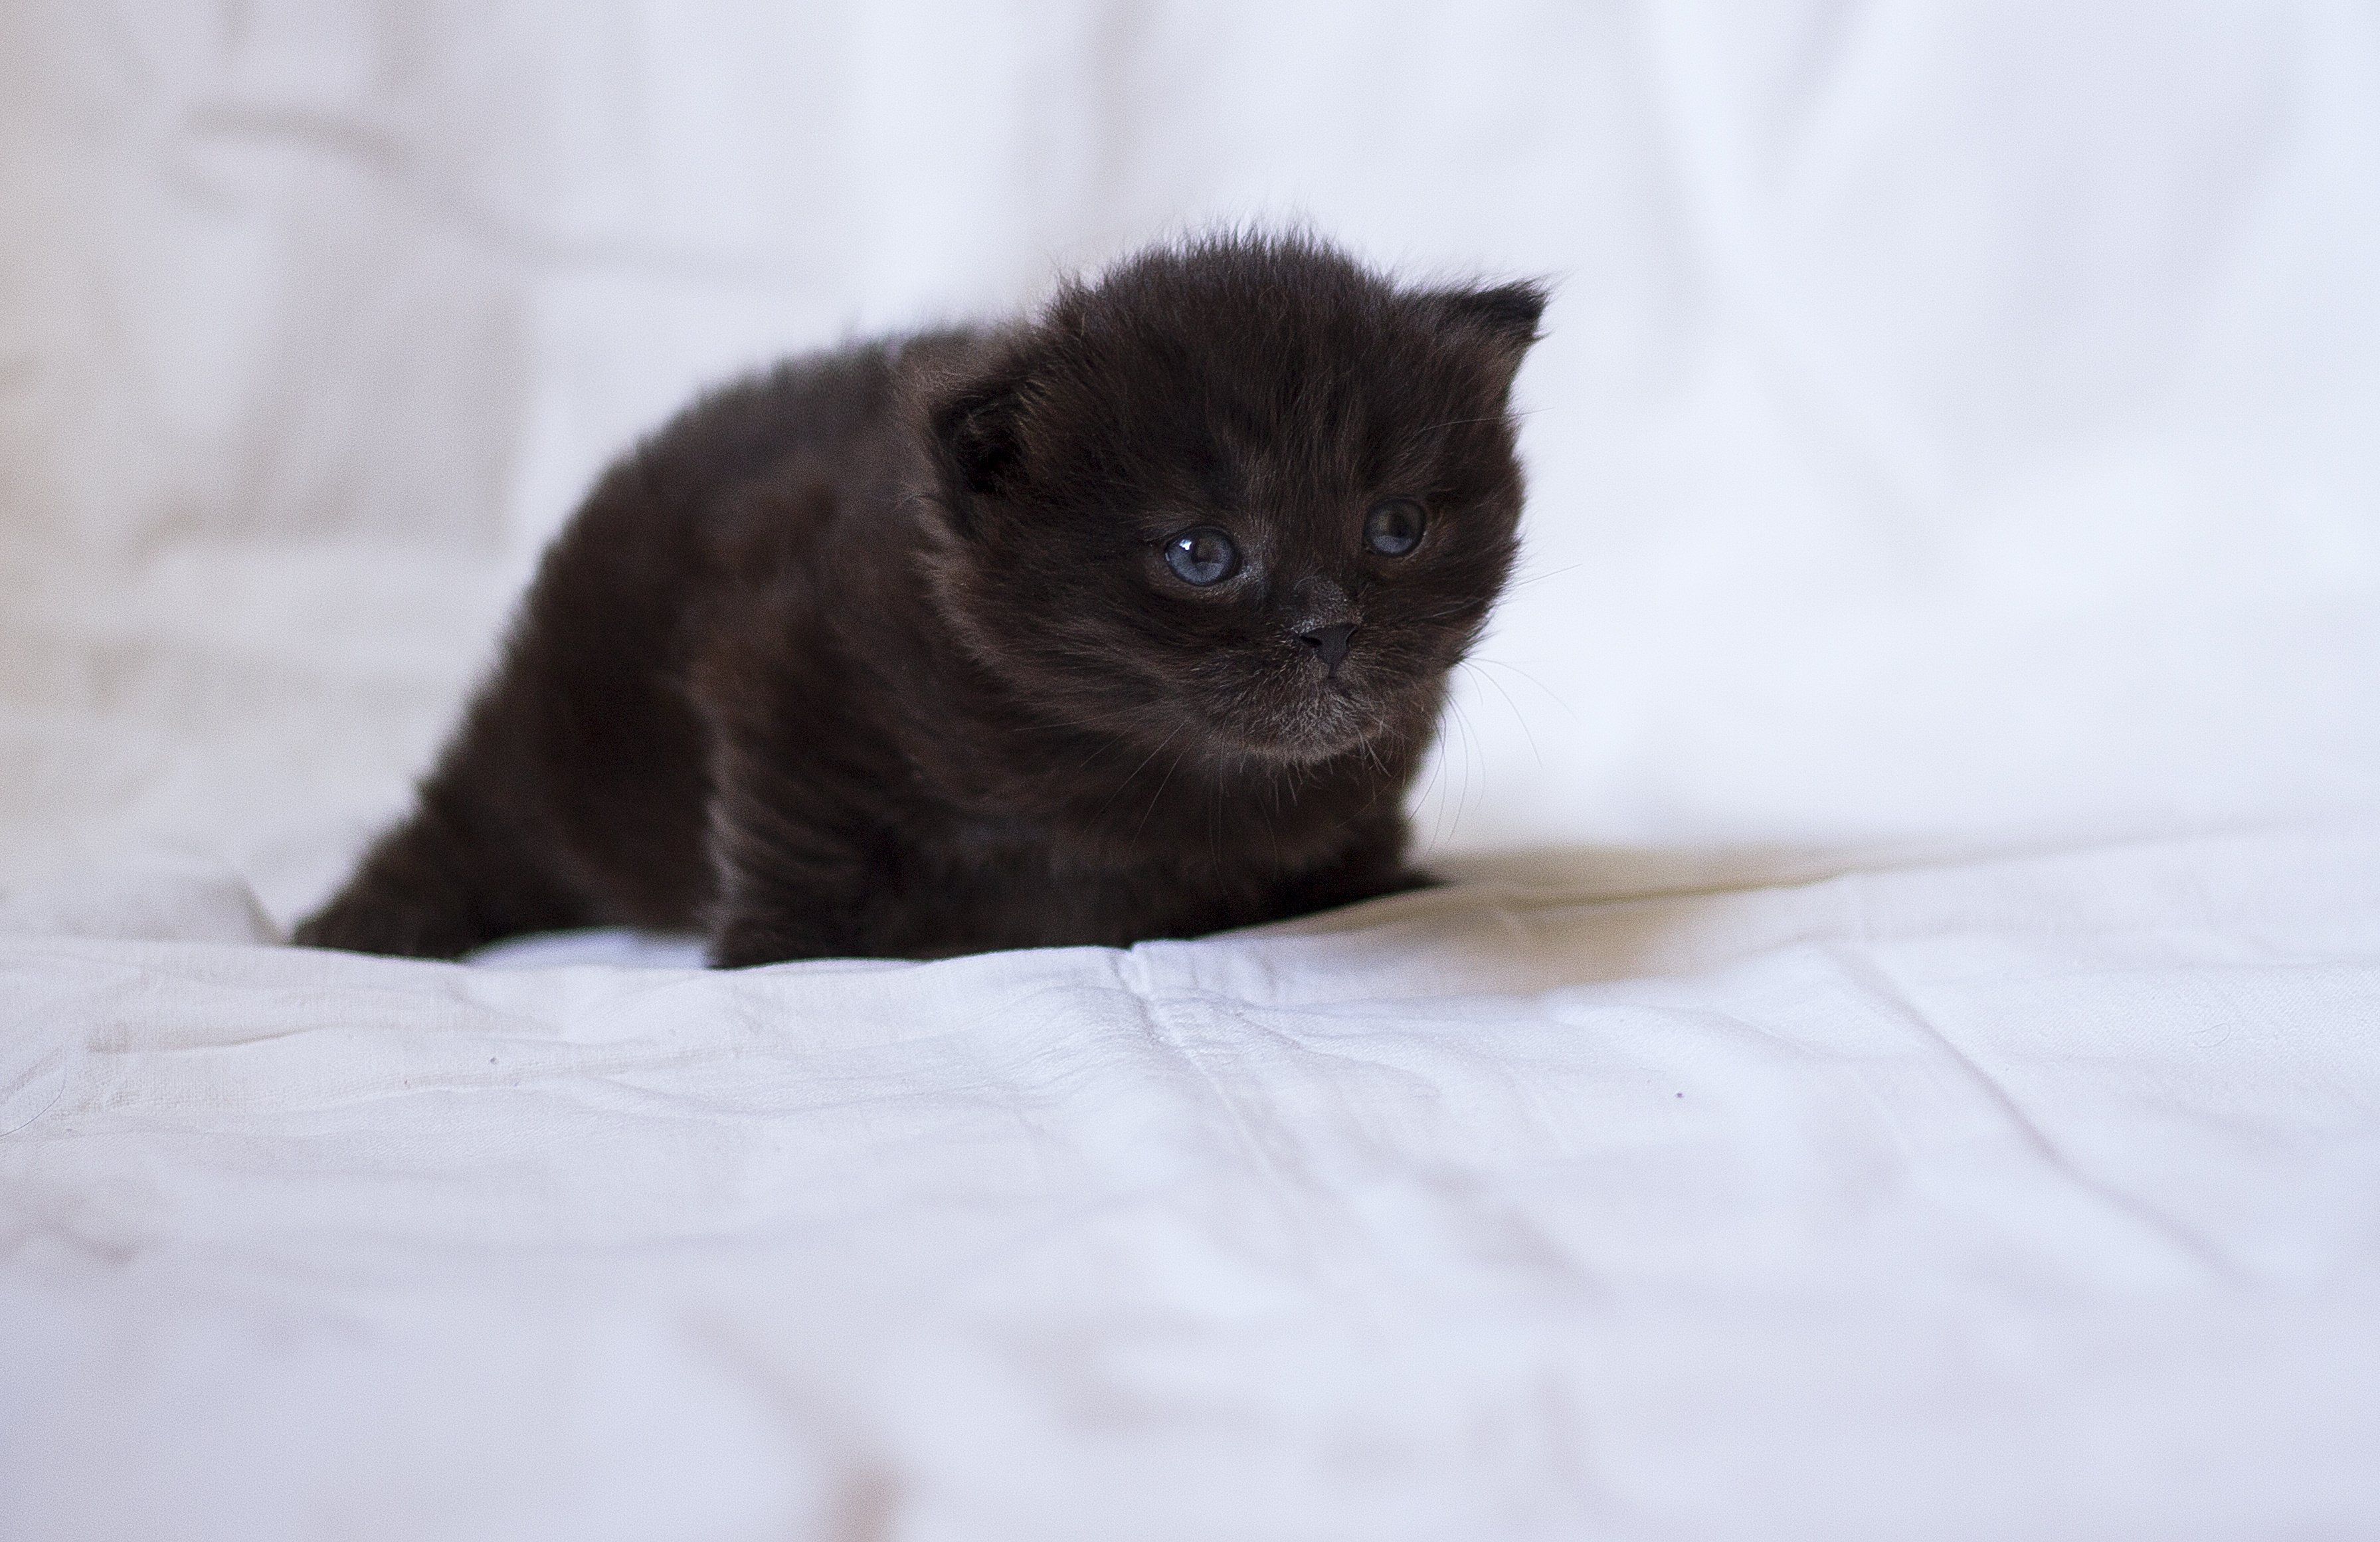 cat kitten Mike Farley cute small chocolate fluffy important g